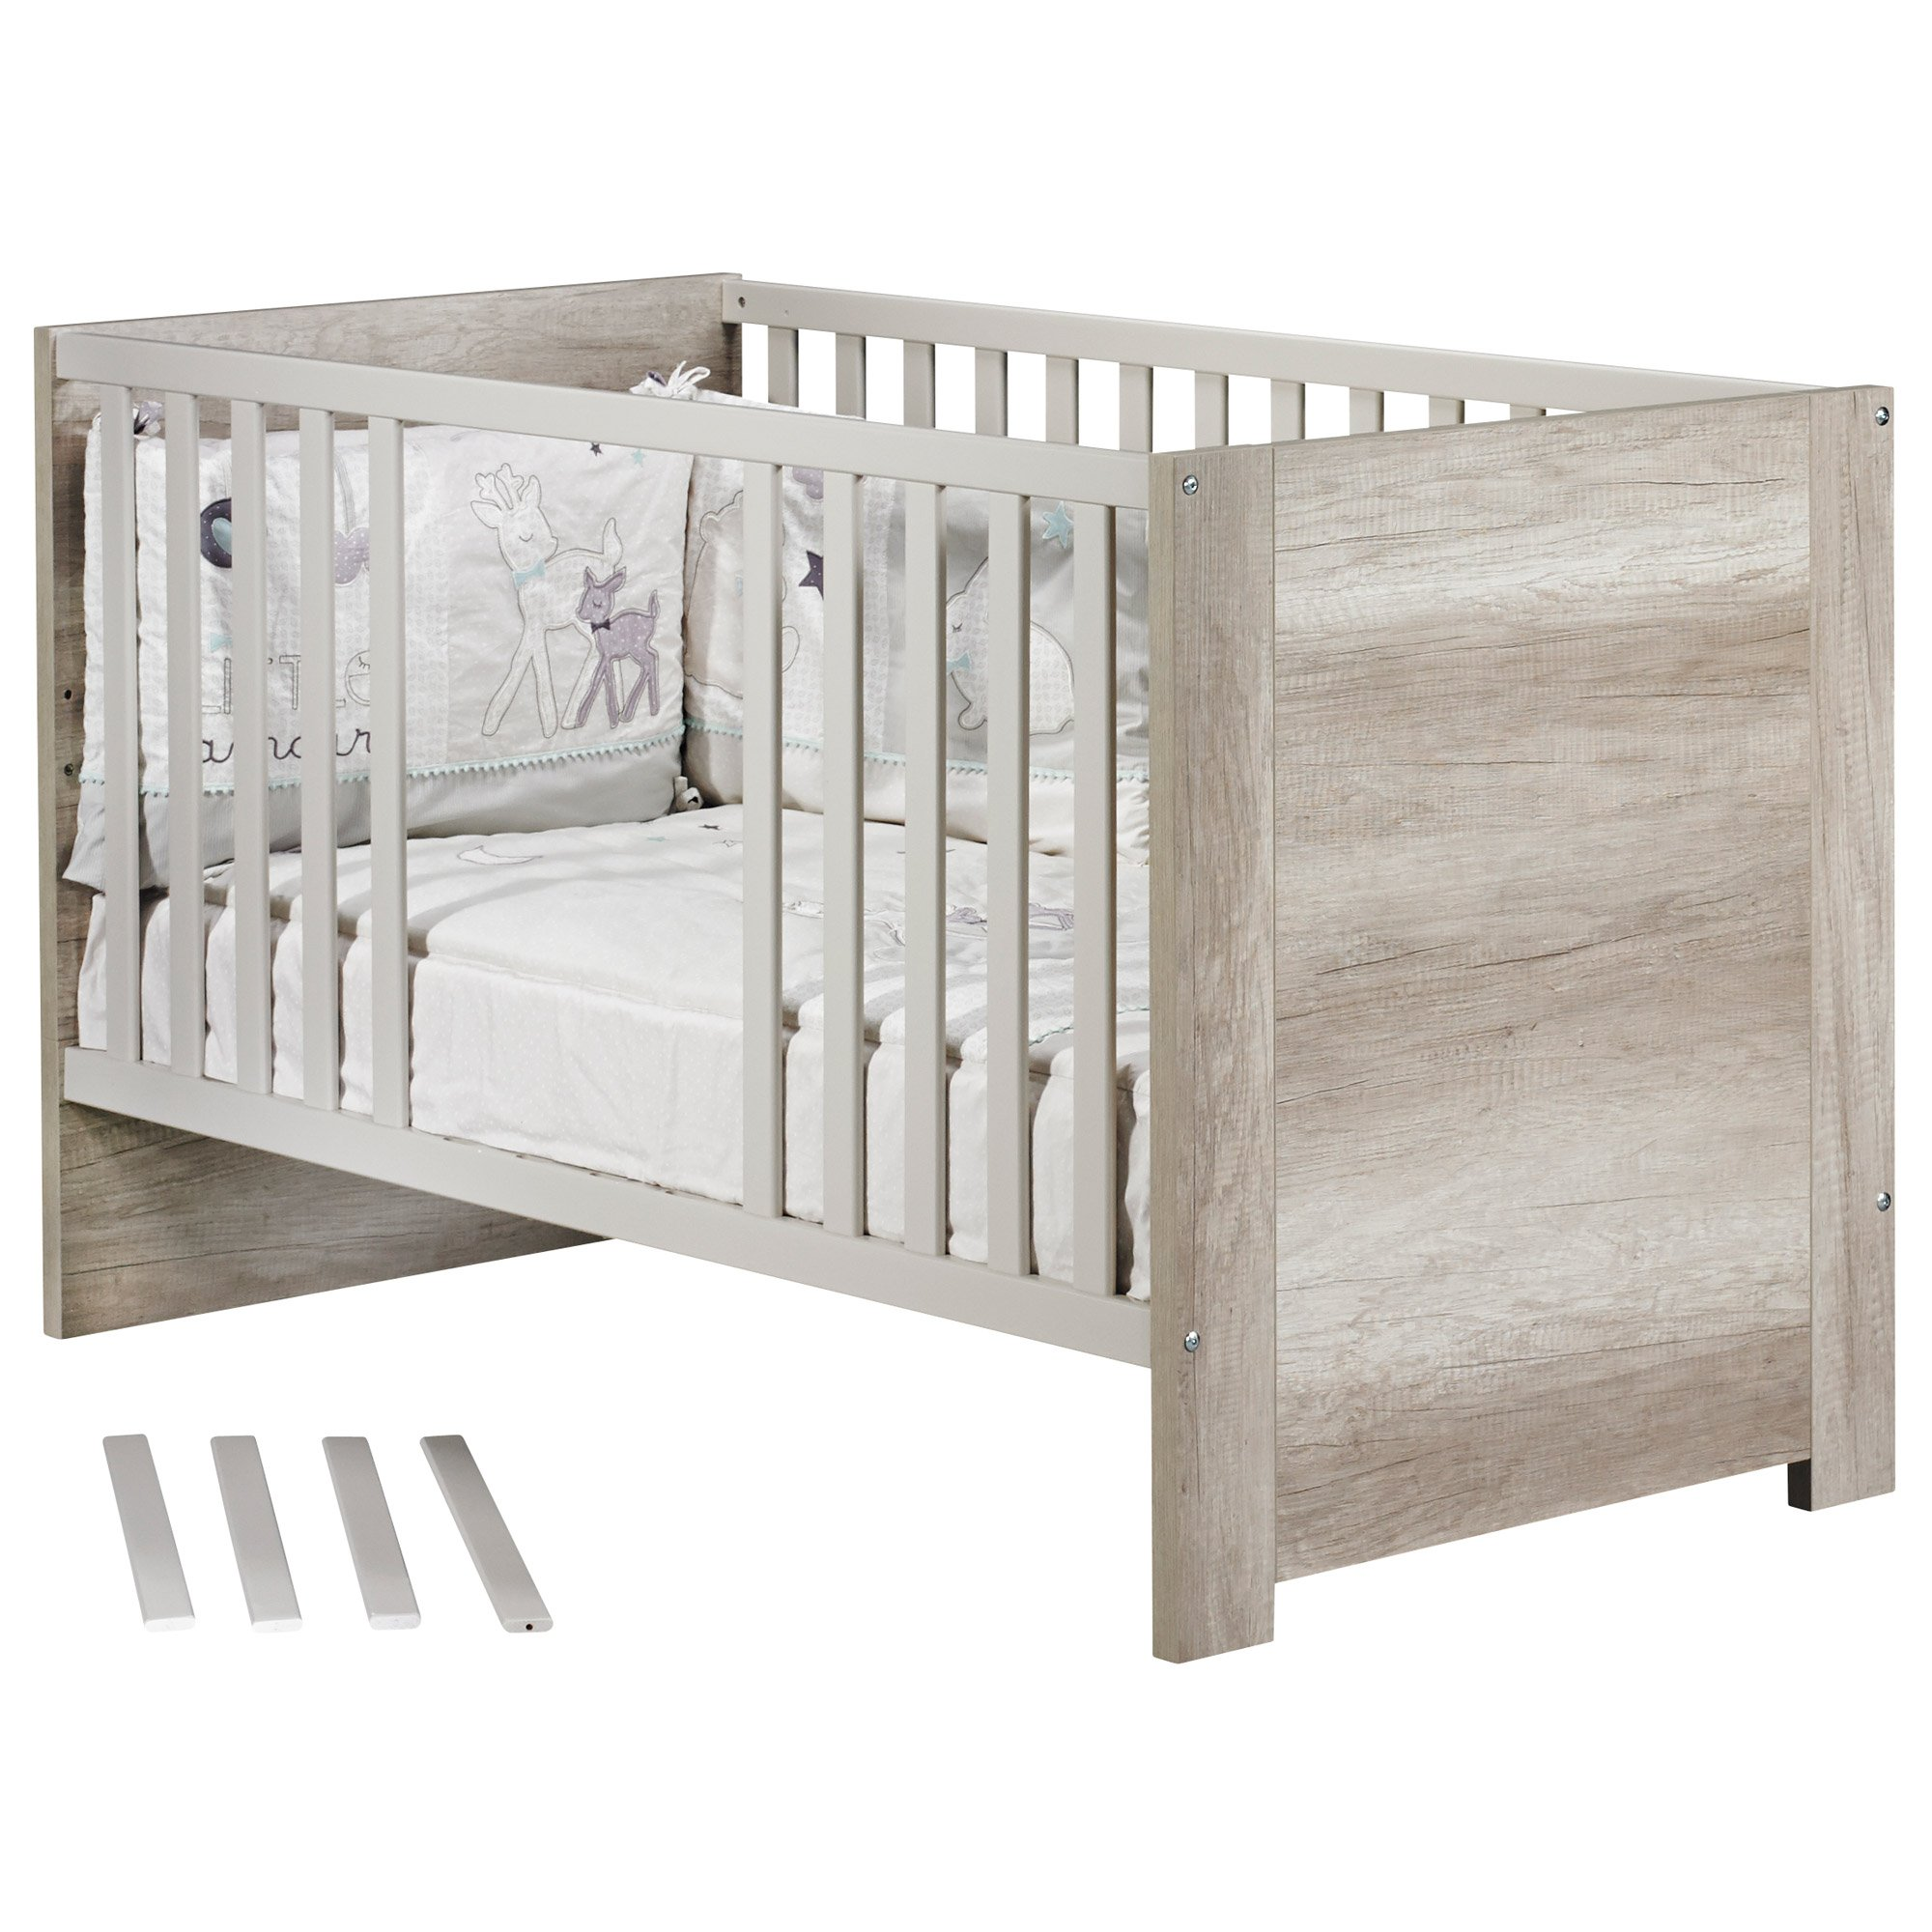 Emmy Little Big Bed 70x140 Chêne 70x140 de Sauthon Baby's Sweet Home